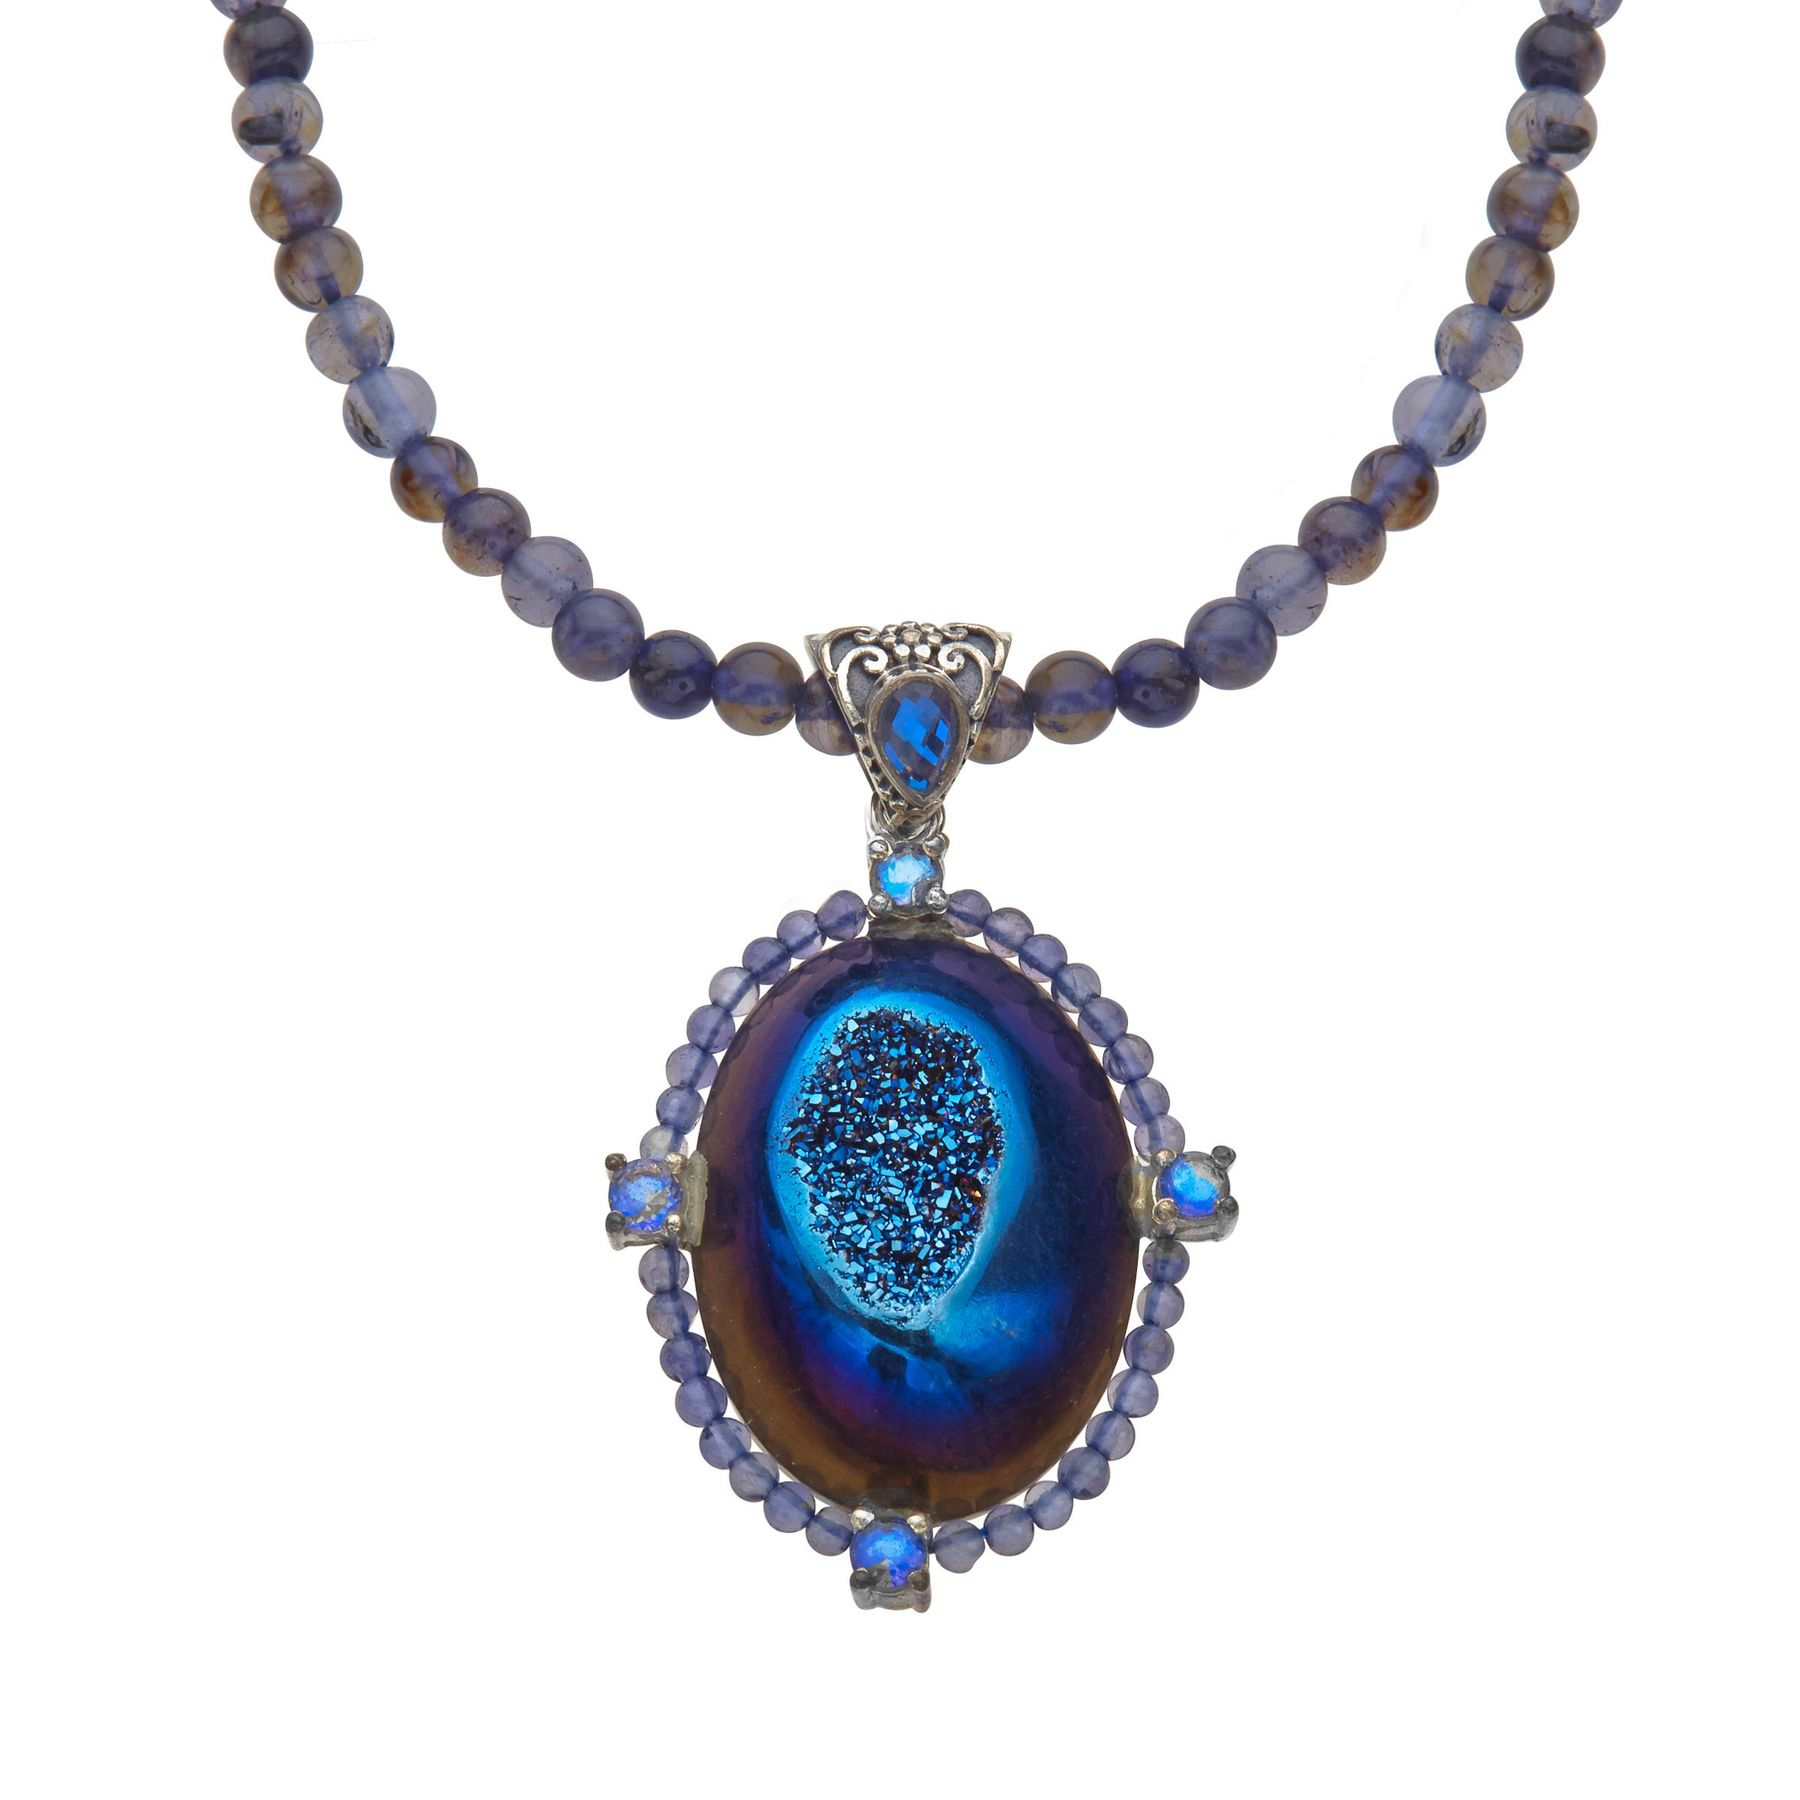 jewelry pinterest on necklace vie blues lapis diy best all about gems ideas iolite in and two blue the images this